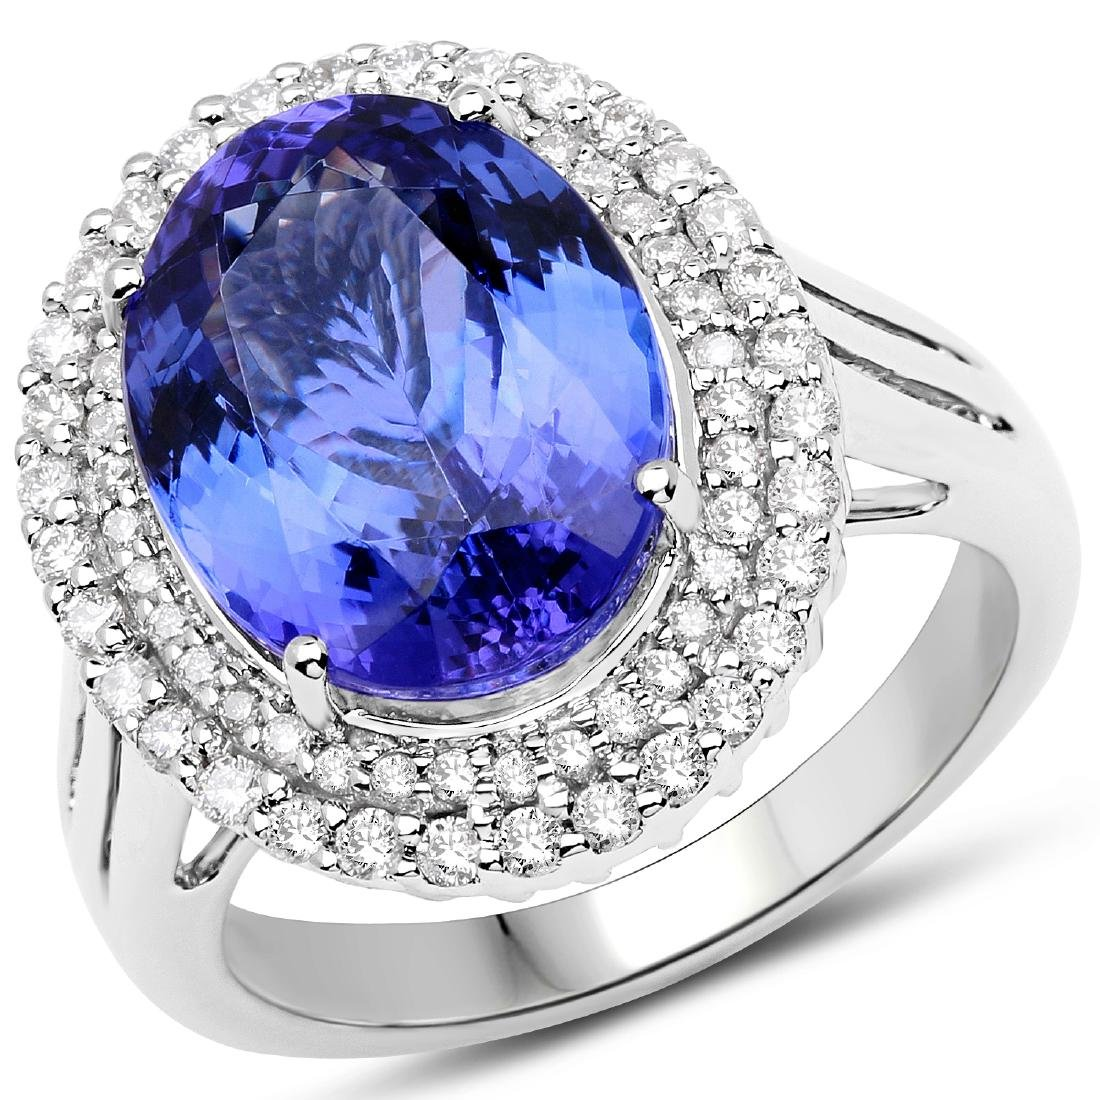 7.08ct Tanzanite 14K White Gold Ring